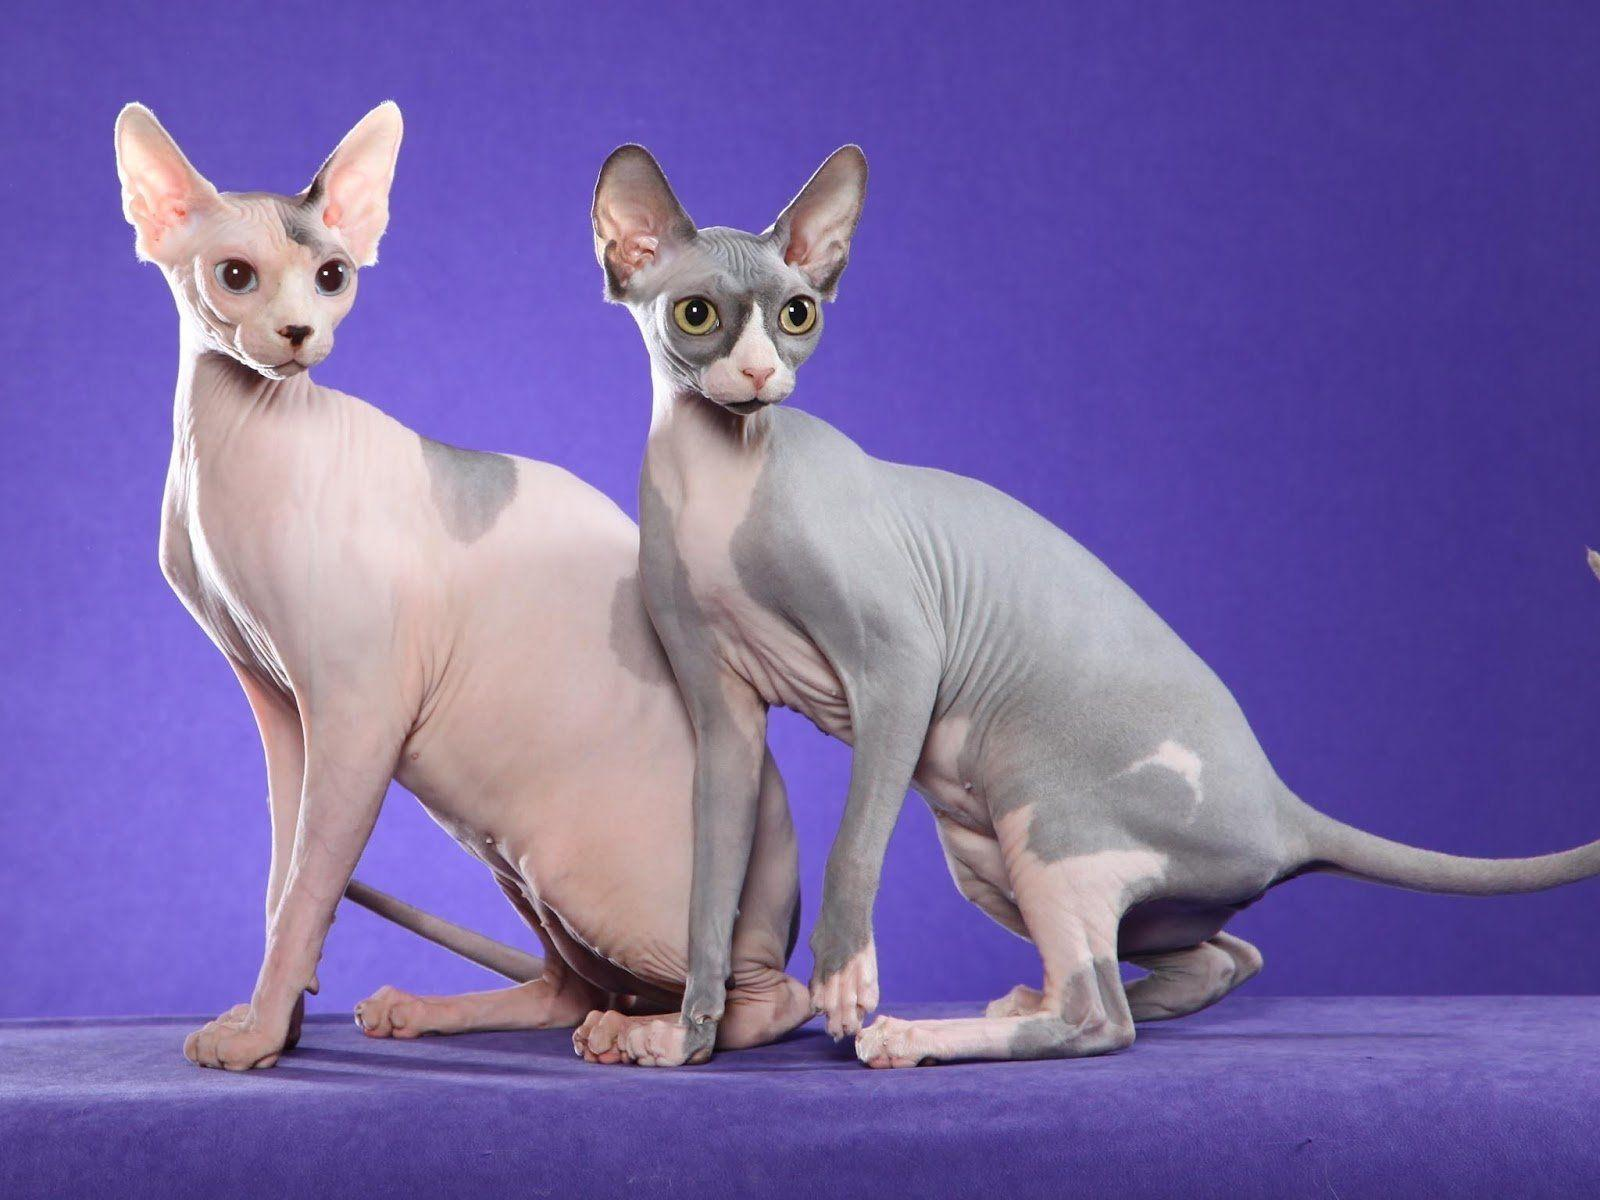 The Sphynx - Hairless Cat Breeds